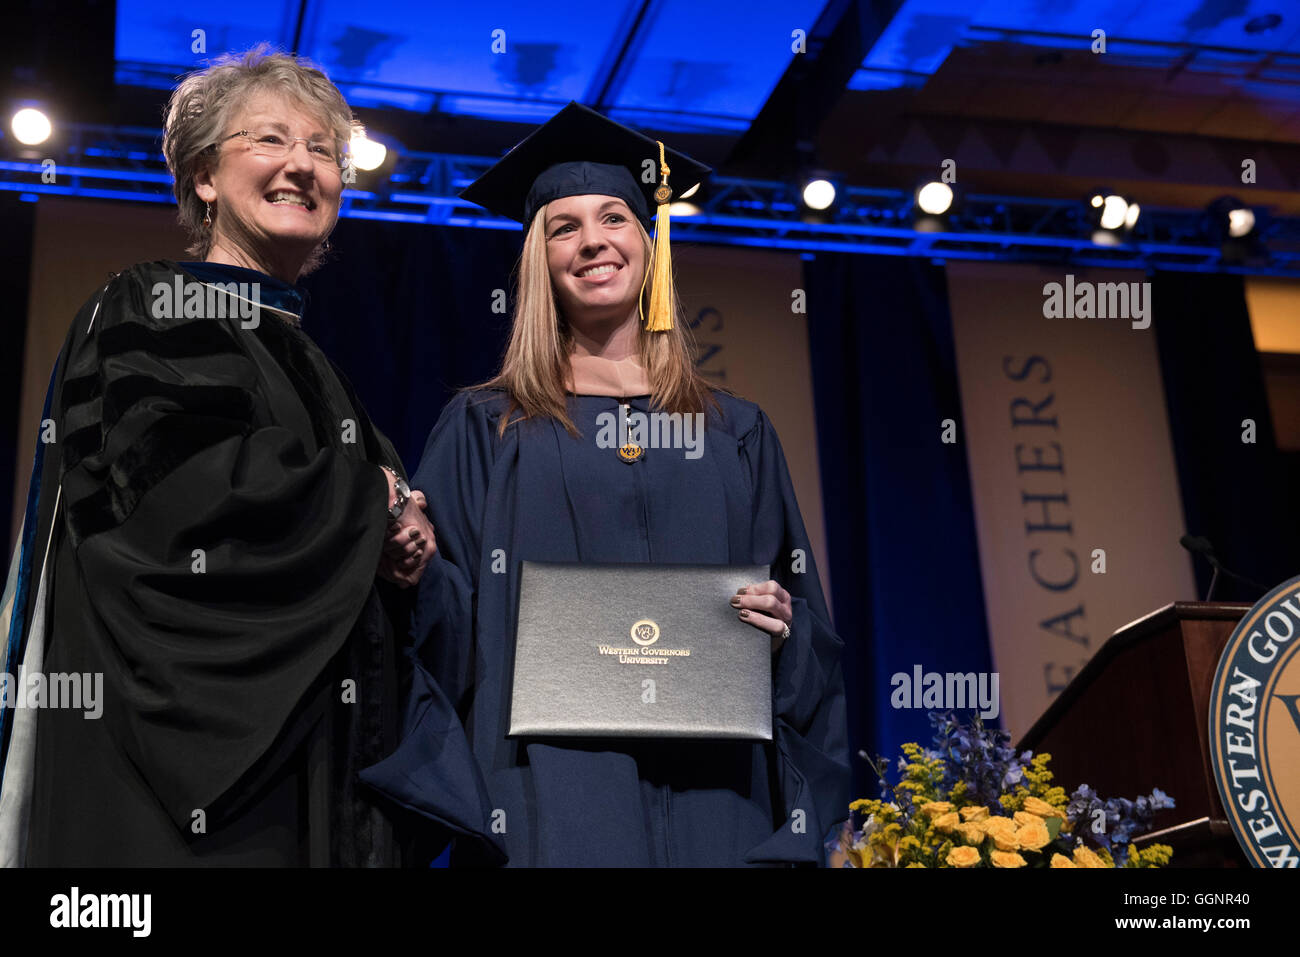 Student pose with diploma during commencement ceremony for Western Governors University, a fully accredited online - Stock Image